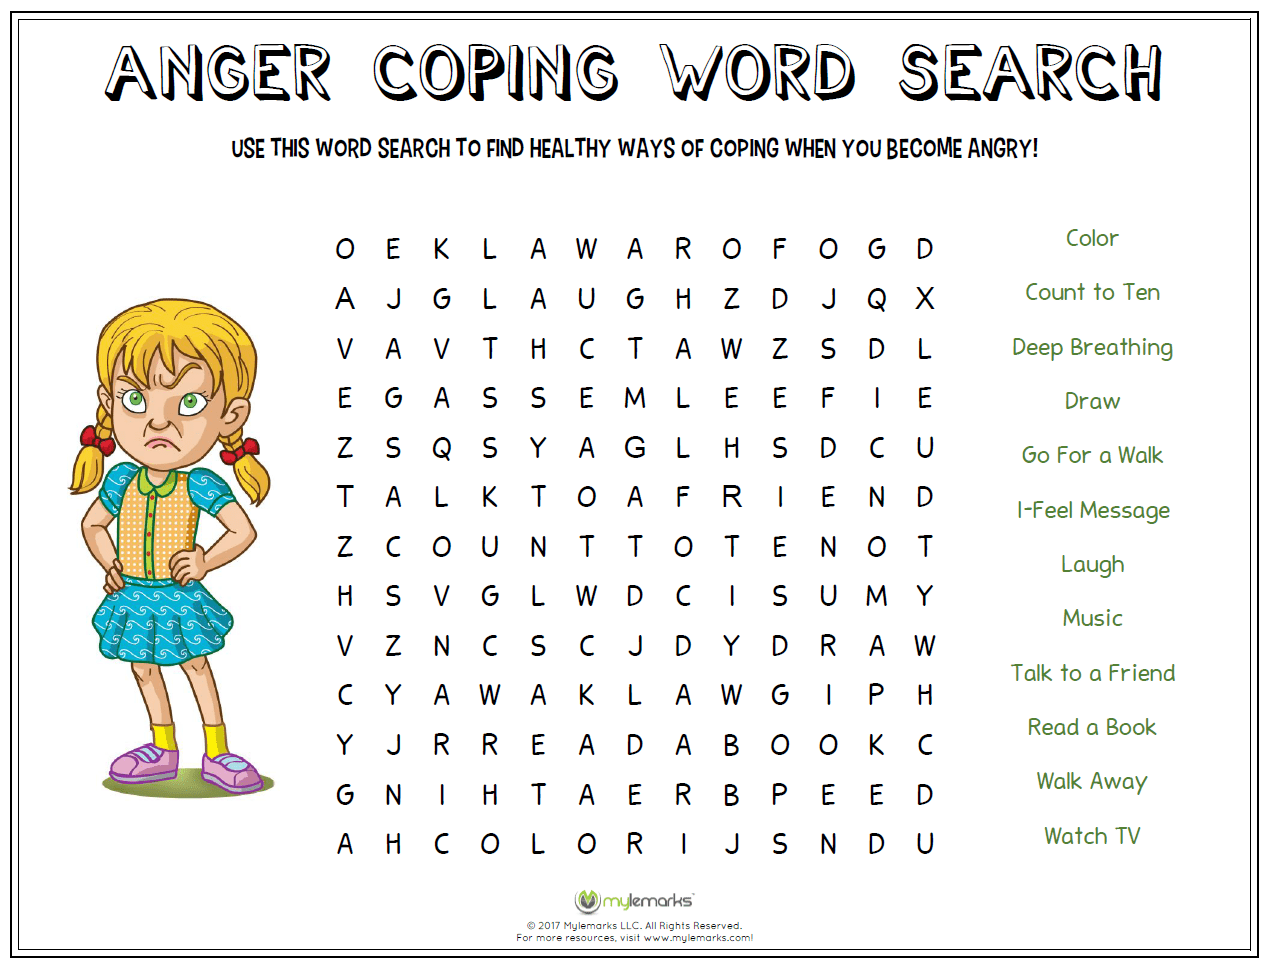 Anger Coping Word Search